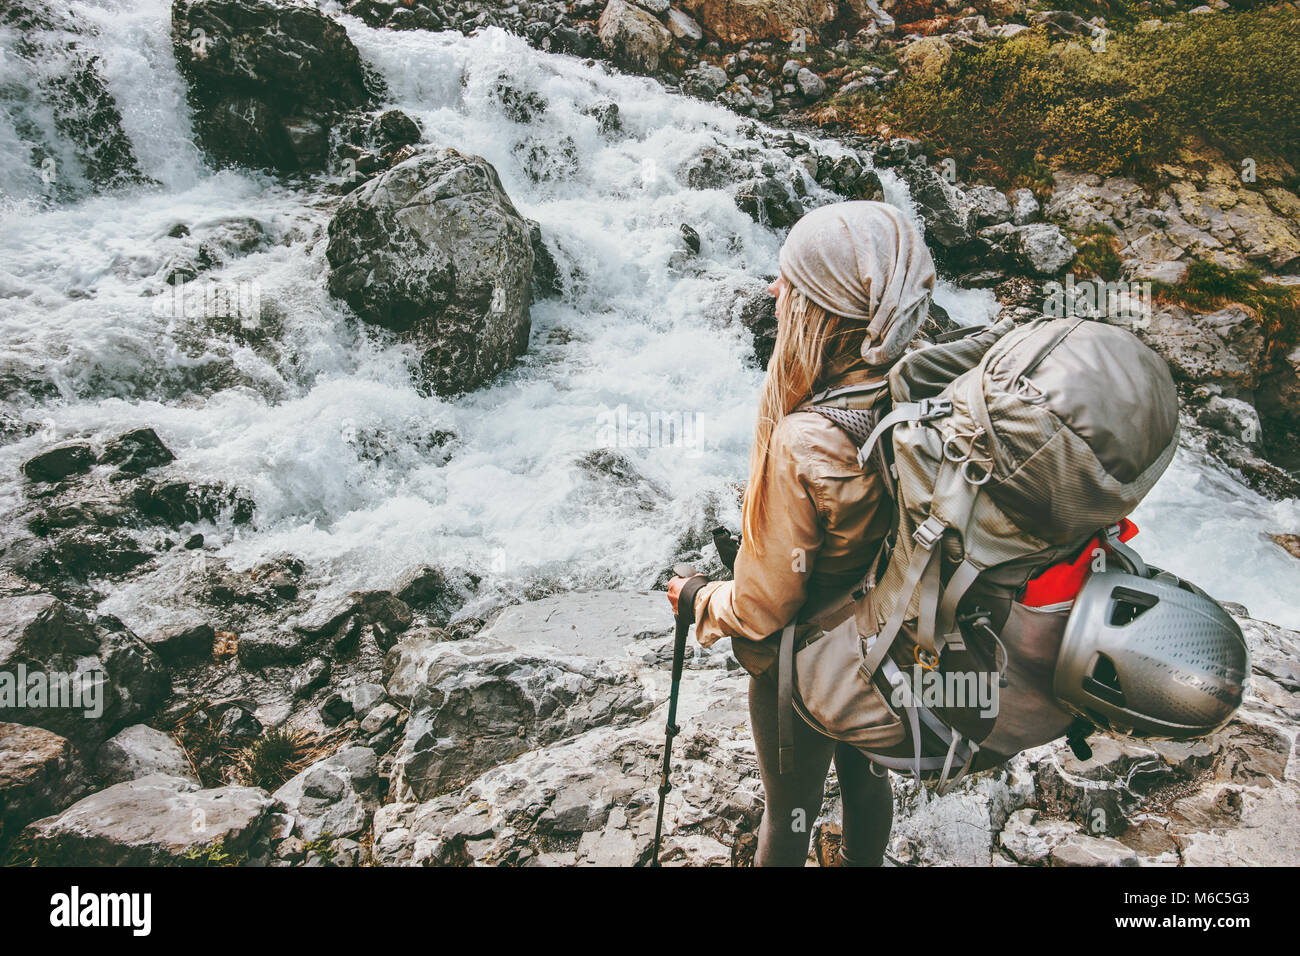 Adventurer travel woman hiking with backpack at river in mountains healthy lifestyle concept active summer vacations - Stock Image